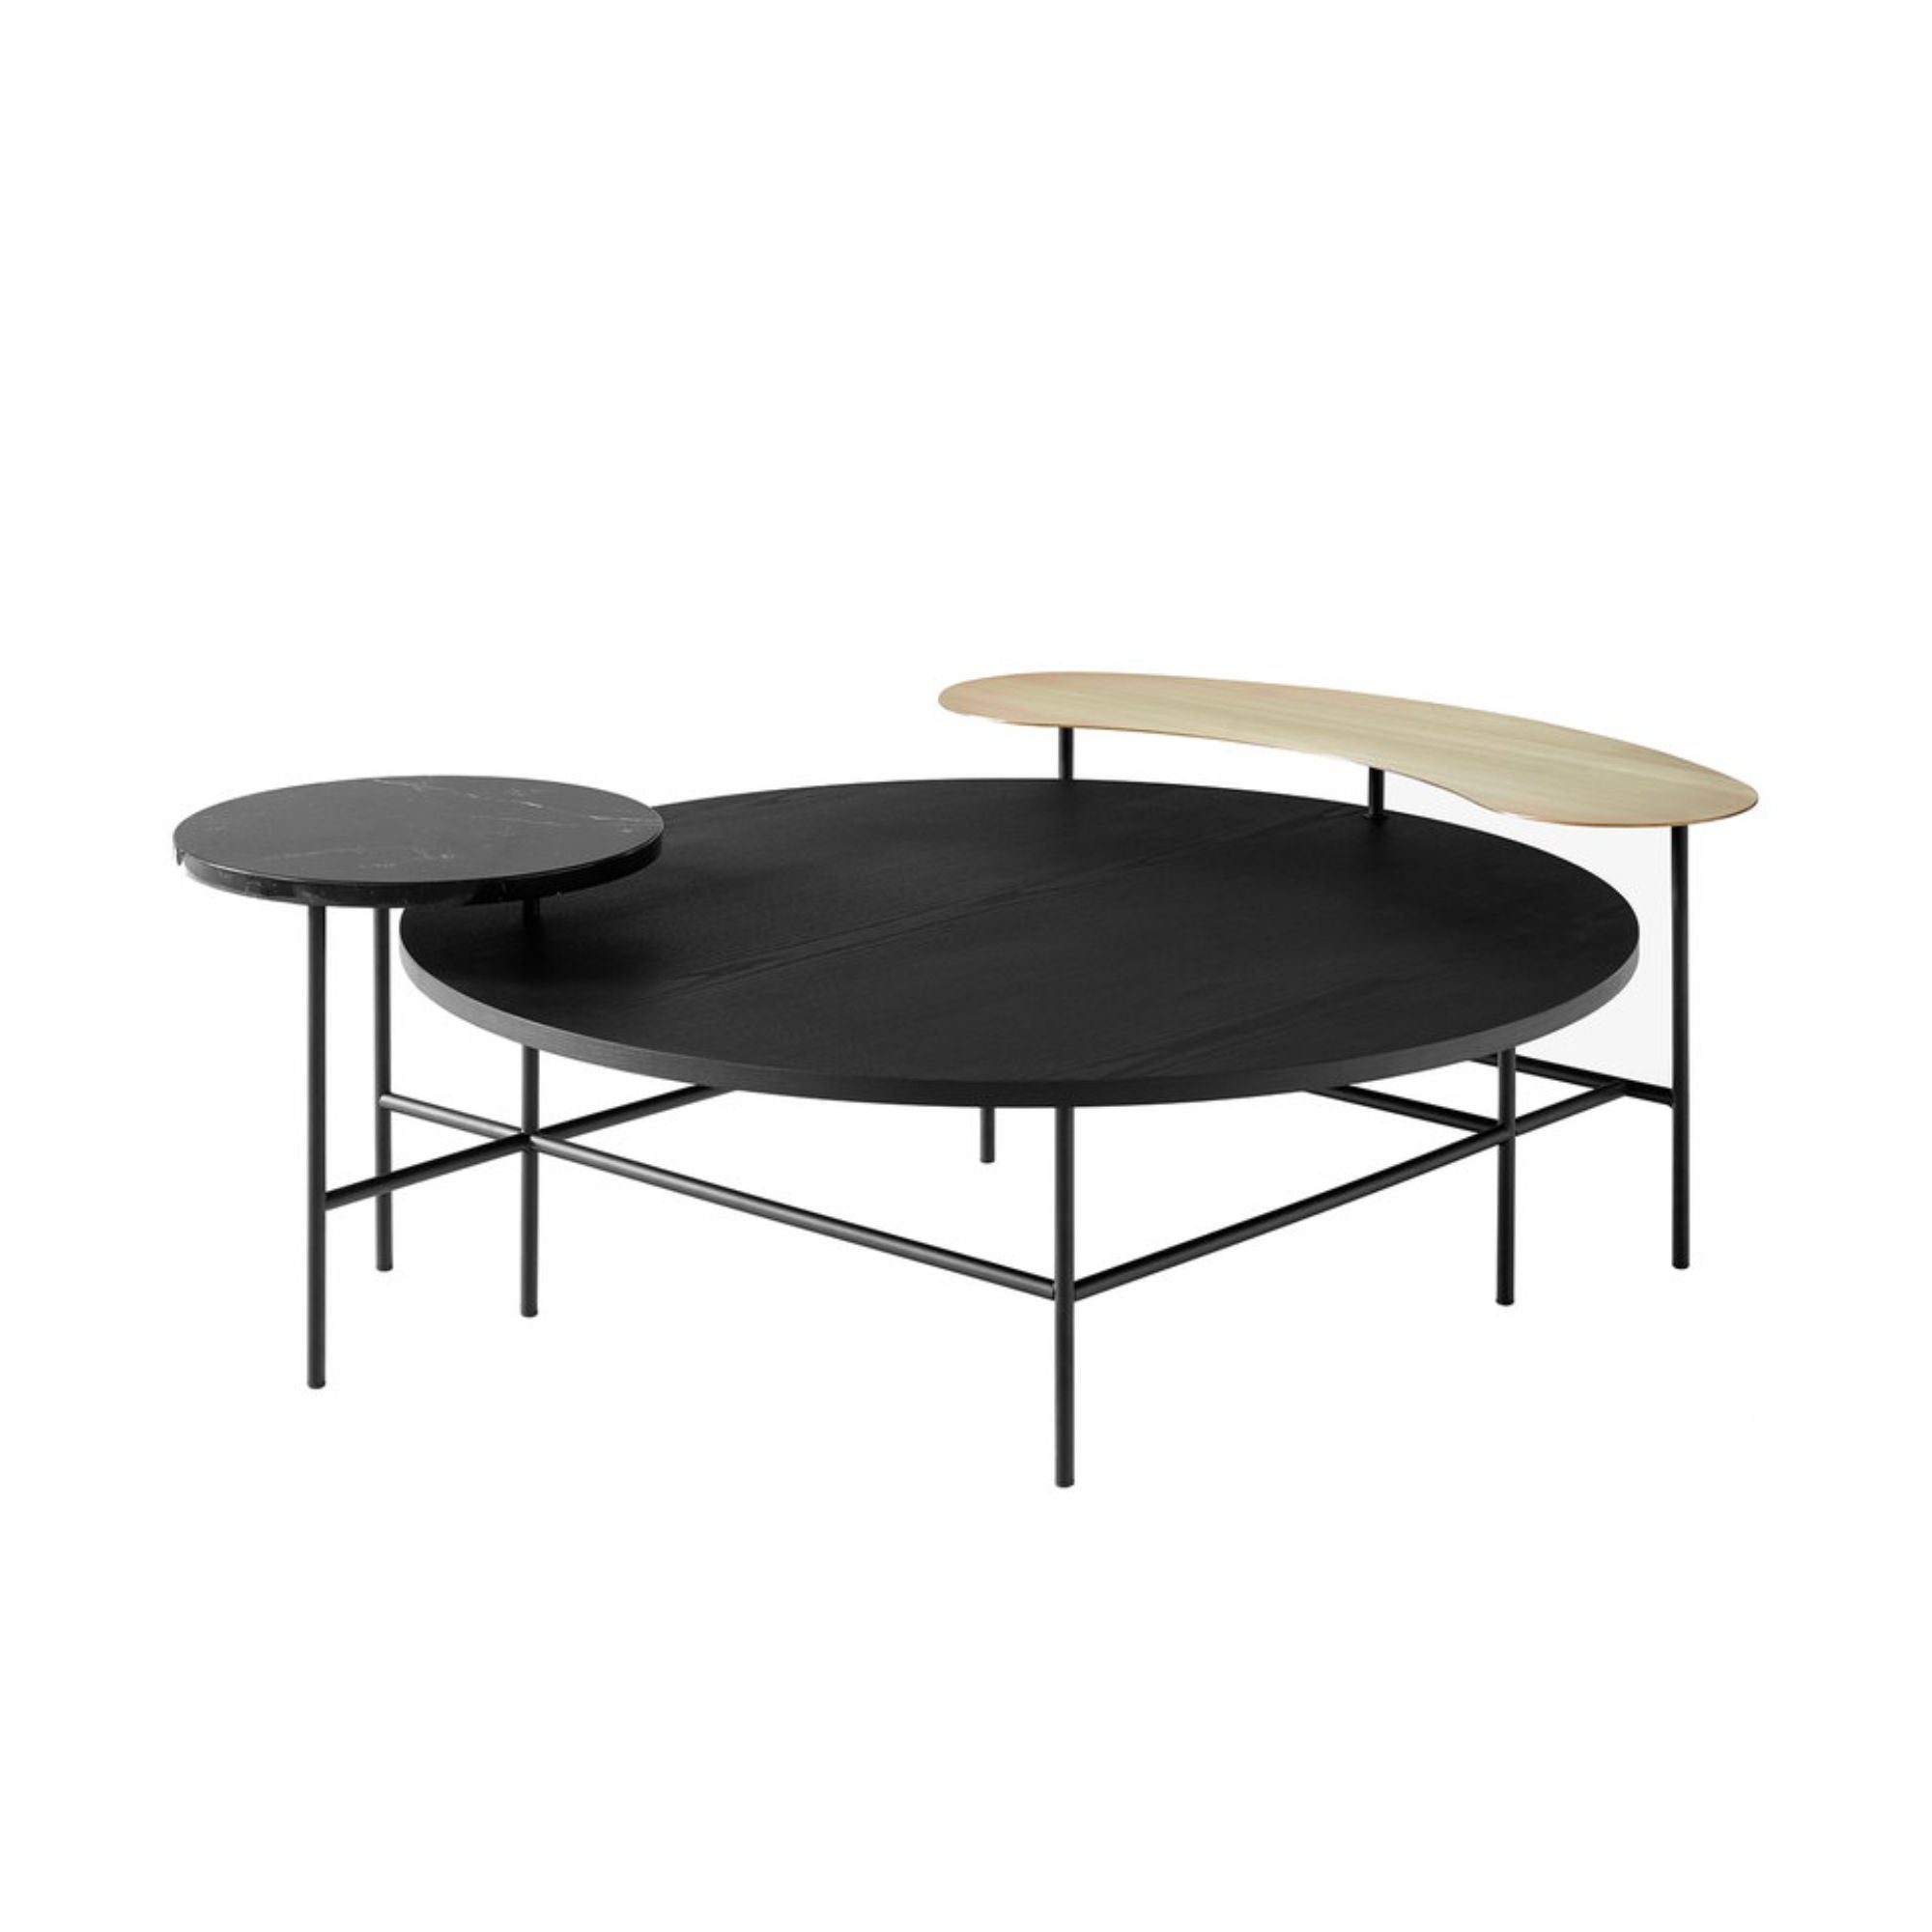 &Tradition JH25 Palette Lounge Table , Black